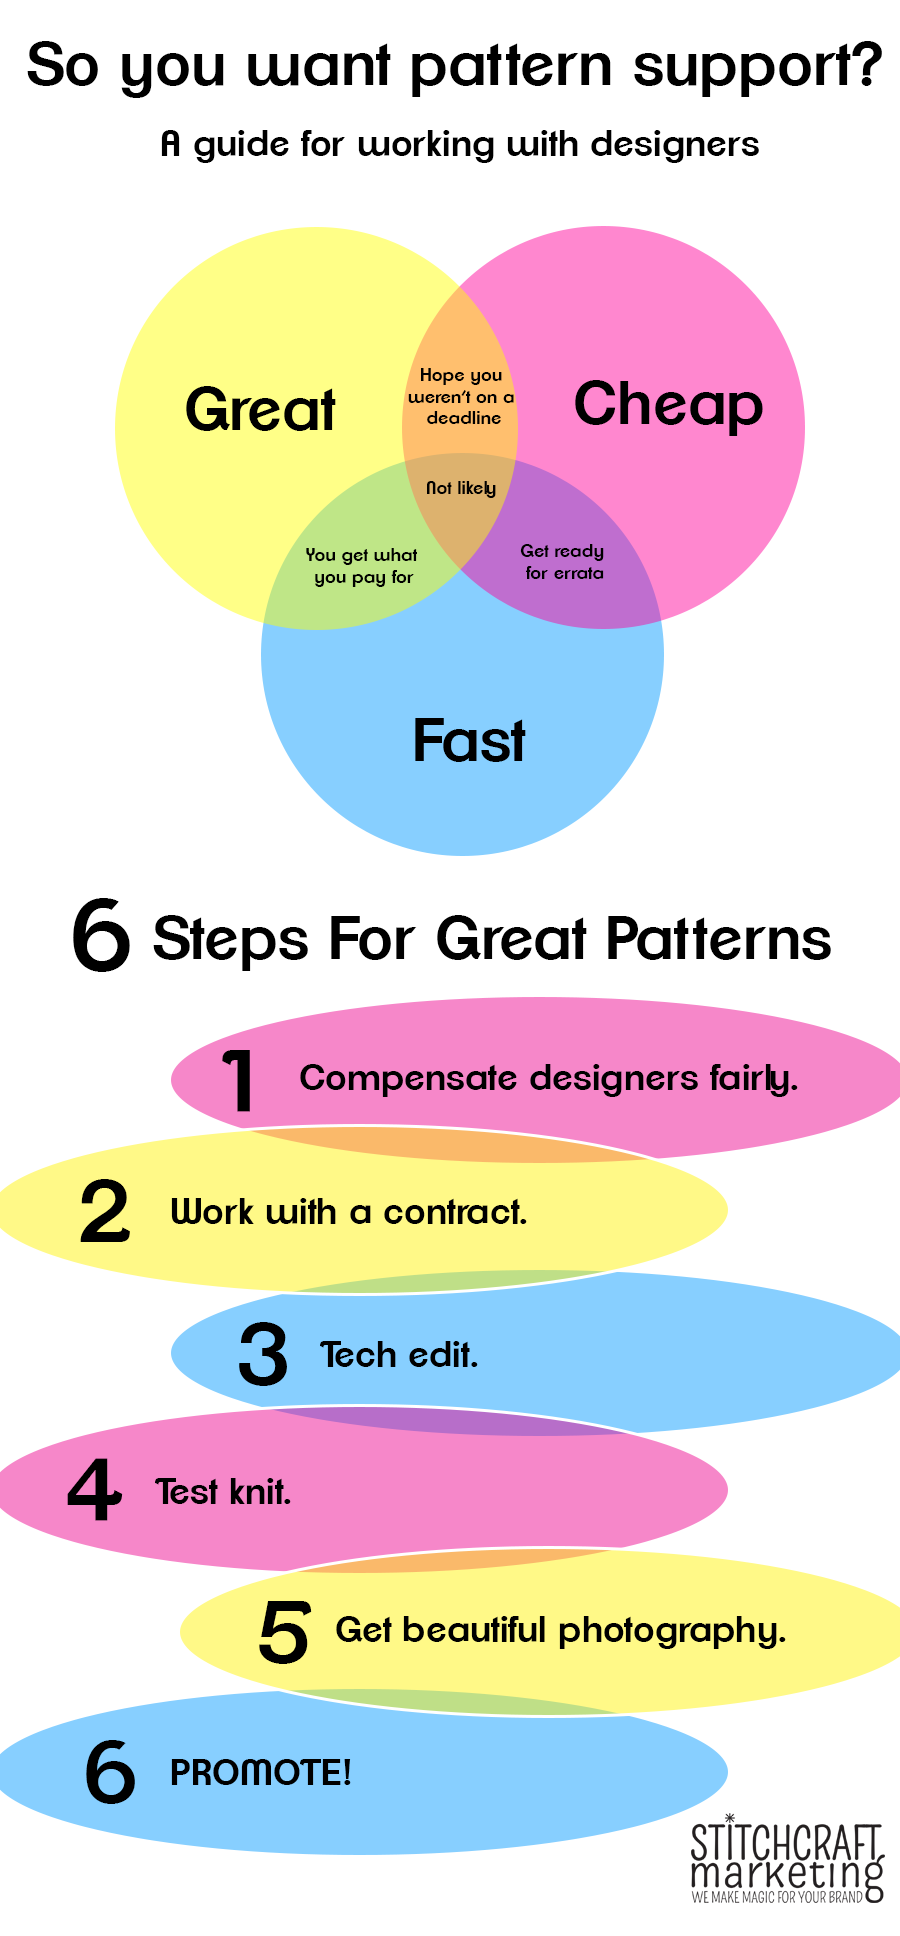 Tips for Successful Pattern Support Relationships